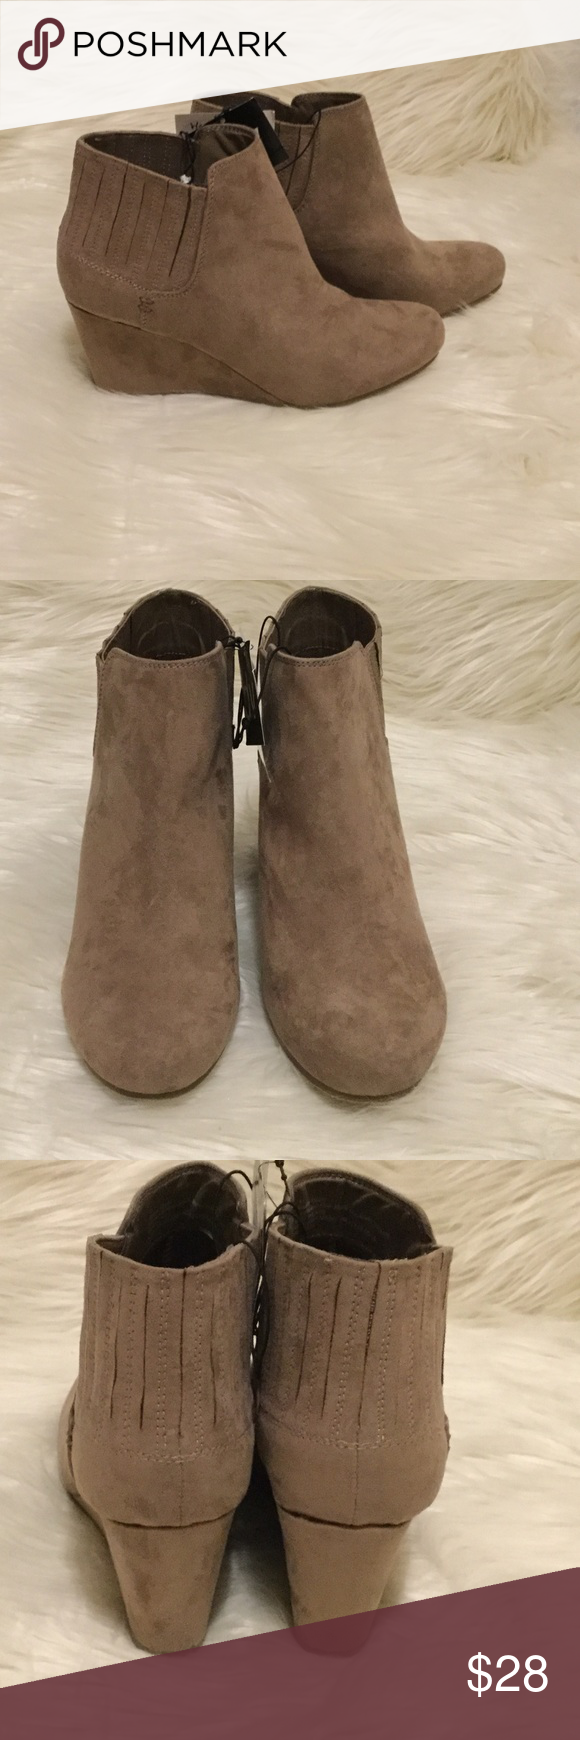 8efd715fb19 Stephanie Taupe Bootie DV for Target. Taupe Suede Bootie. Wedge is 3